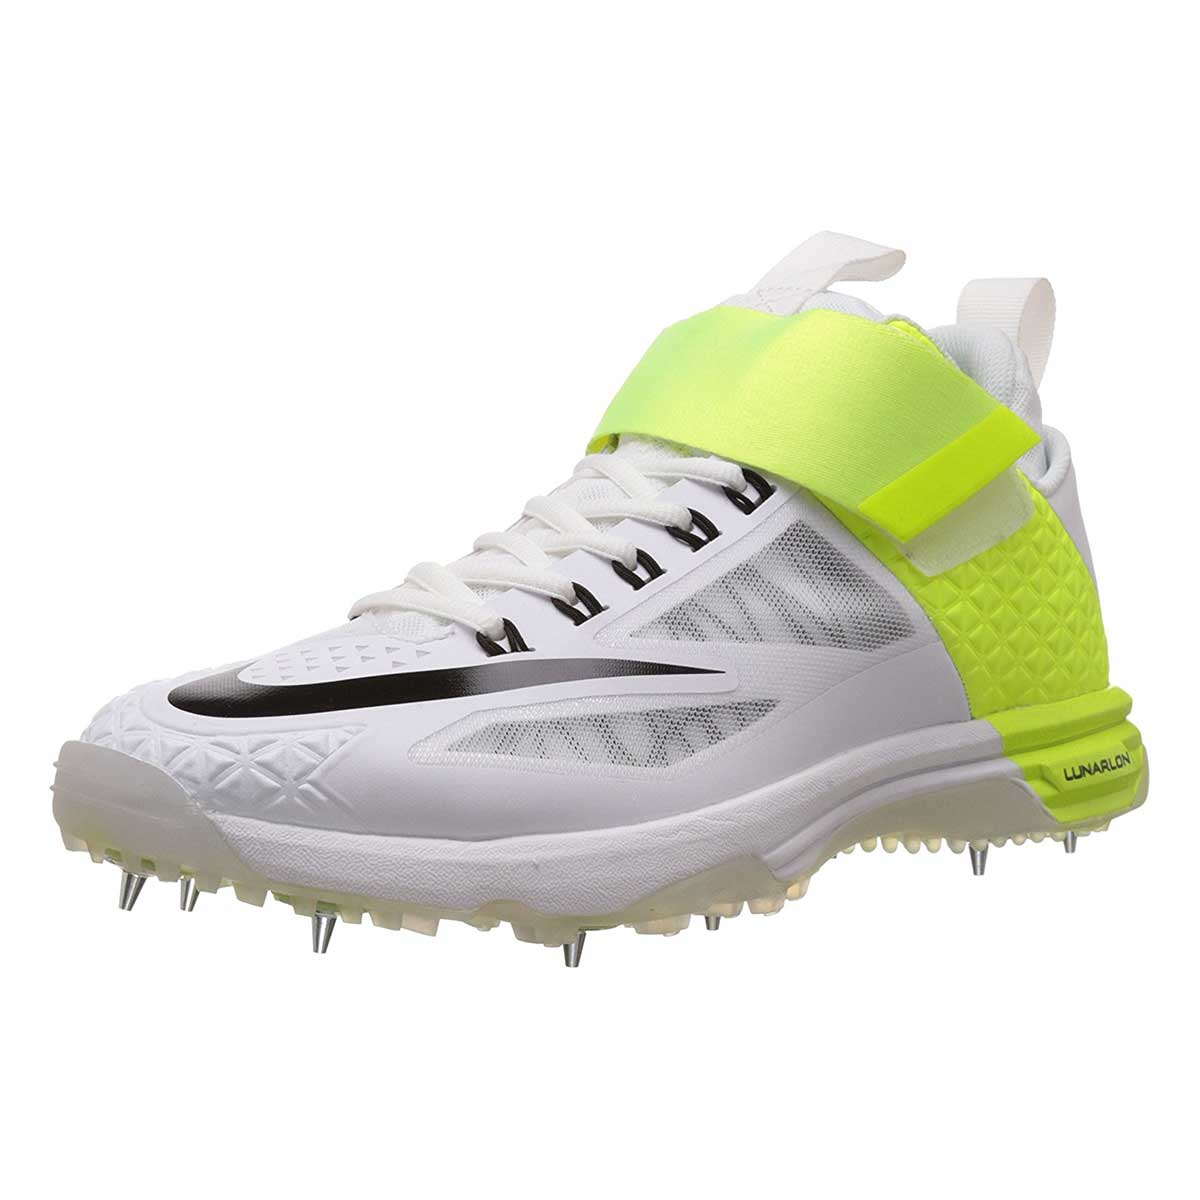 super popular c5f25 7e5be Nike Lunar Accelerate 2 Cricket Shoes